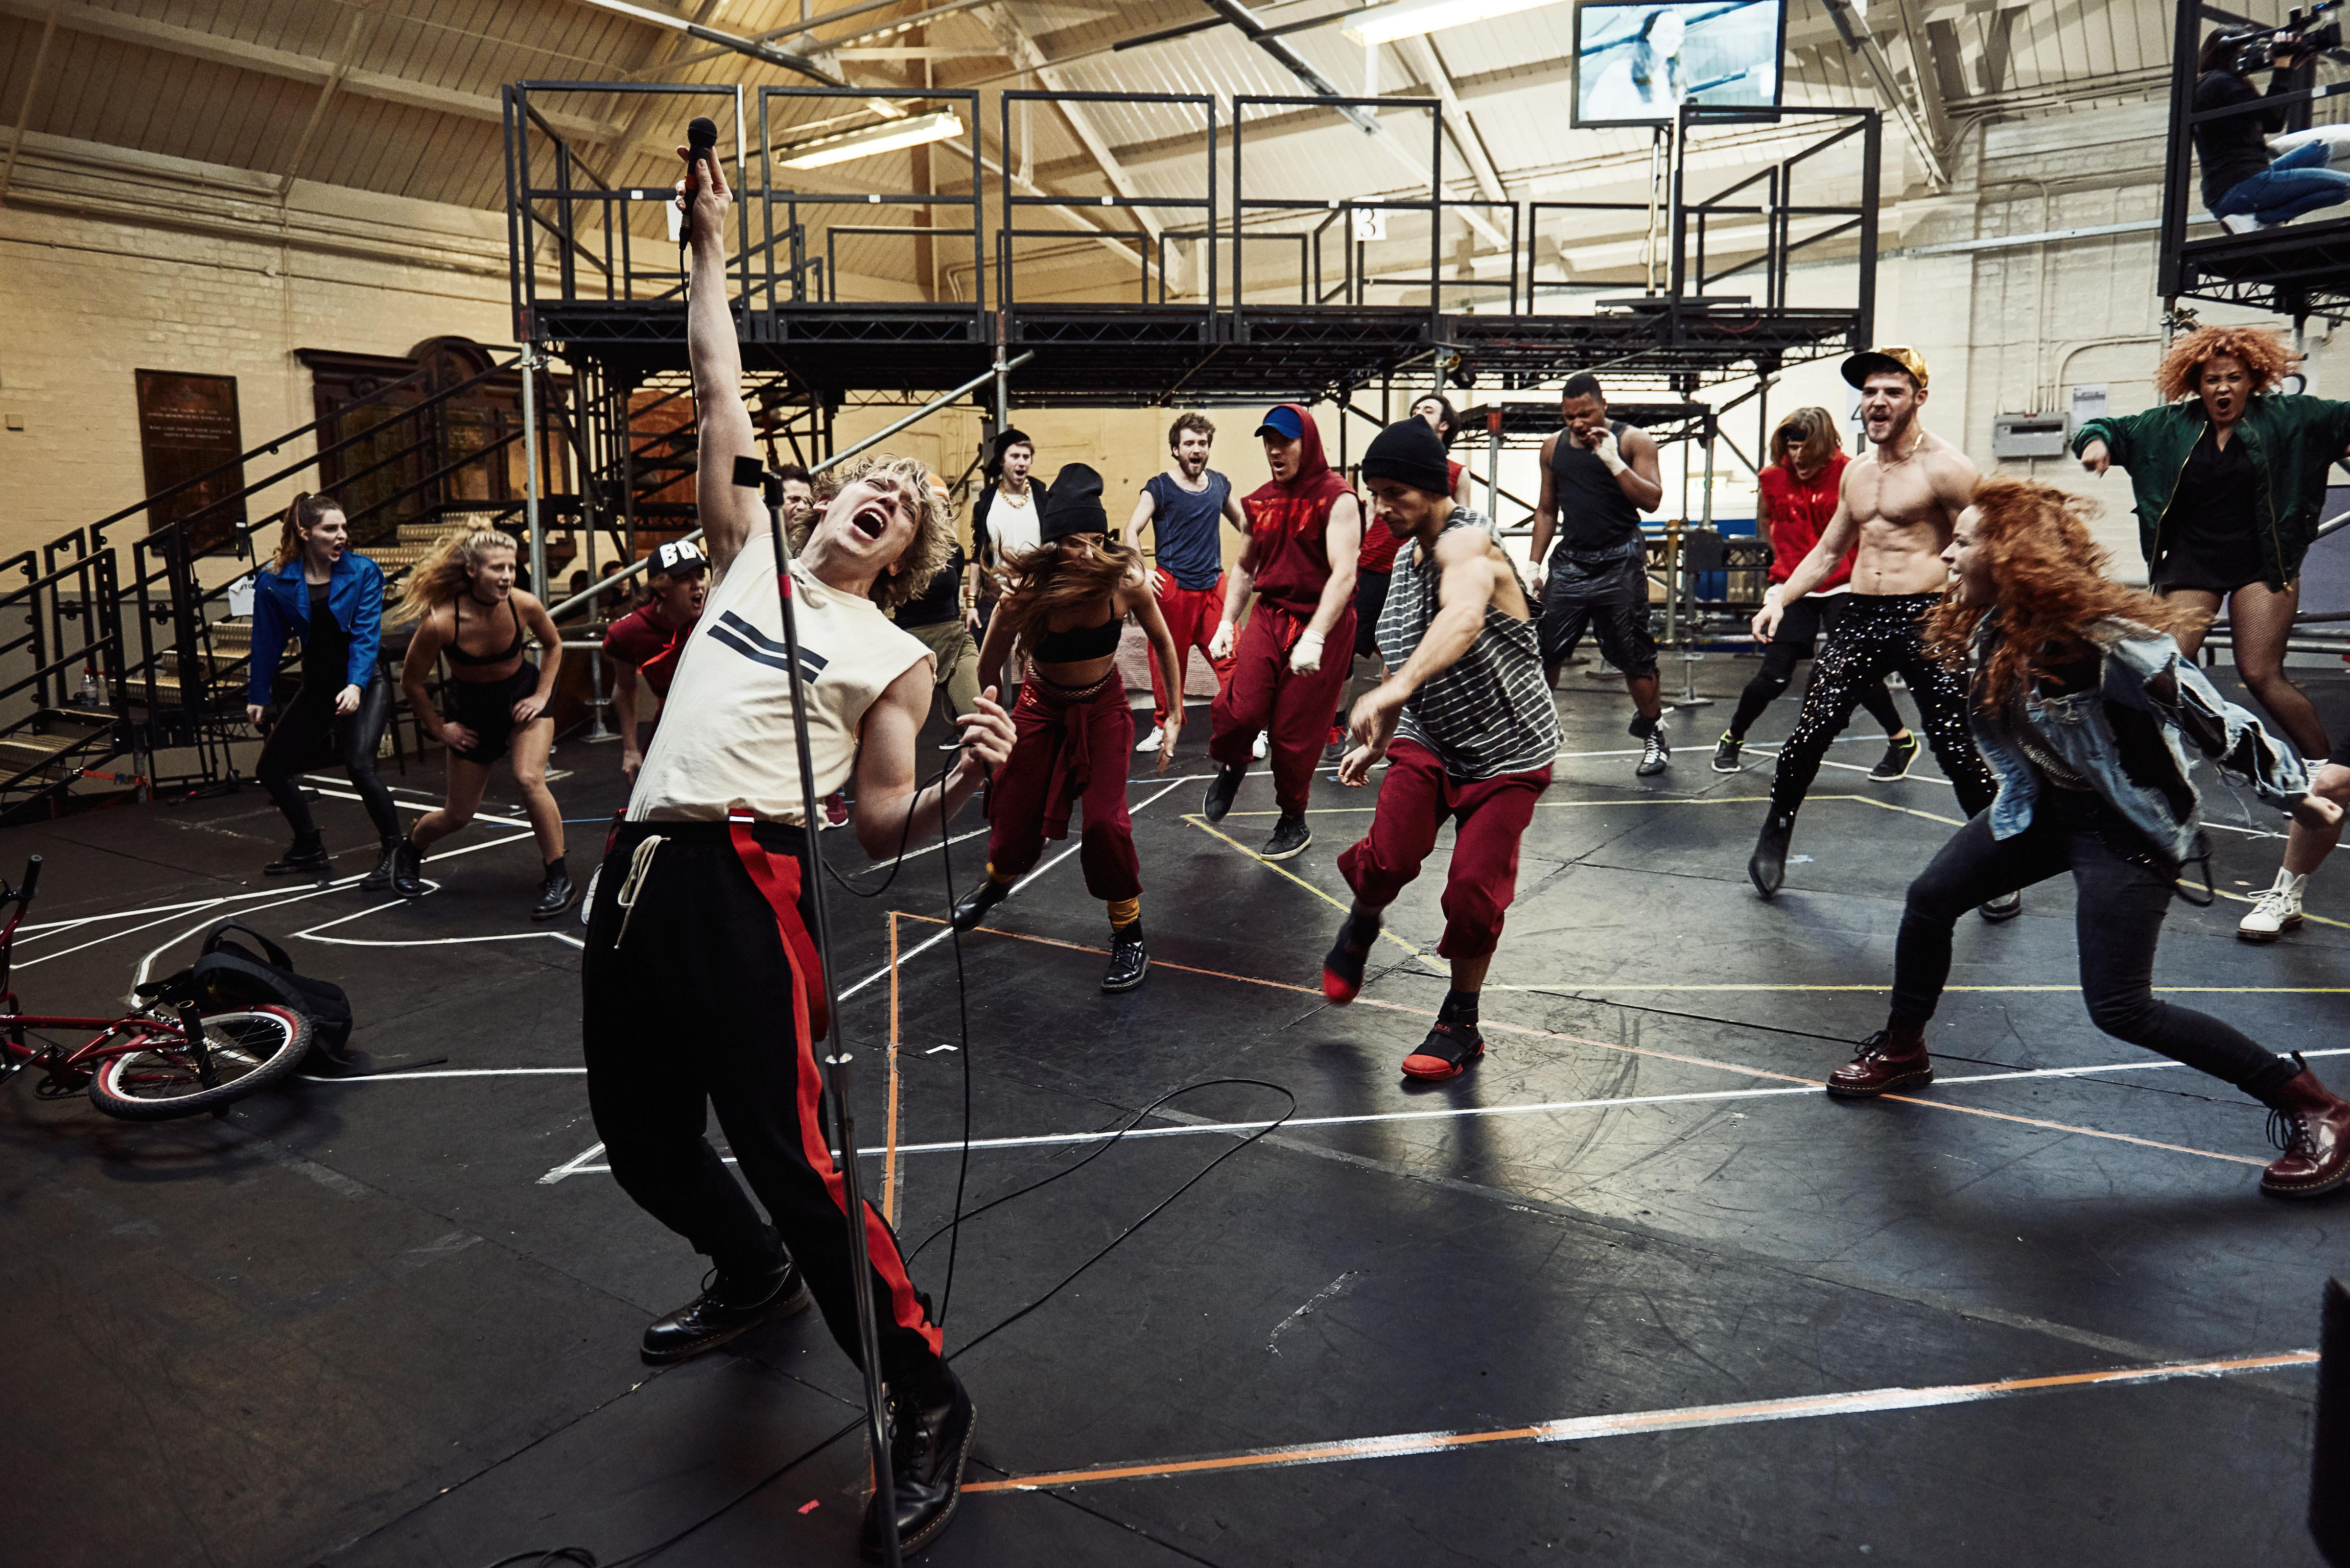 andrew-polec-and-the-cast-in-rehearsals-for-bat-out-of-hell-the-musical-credit-specular